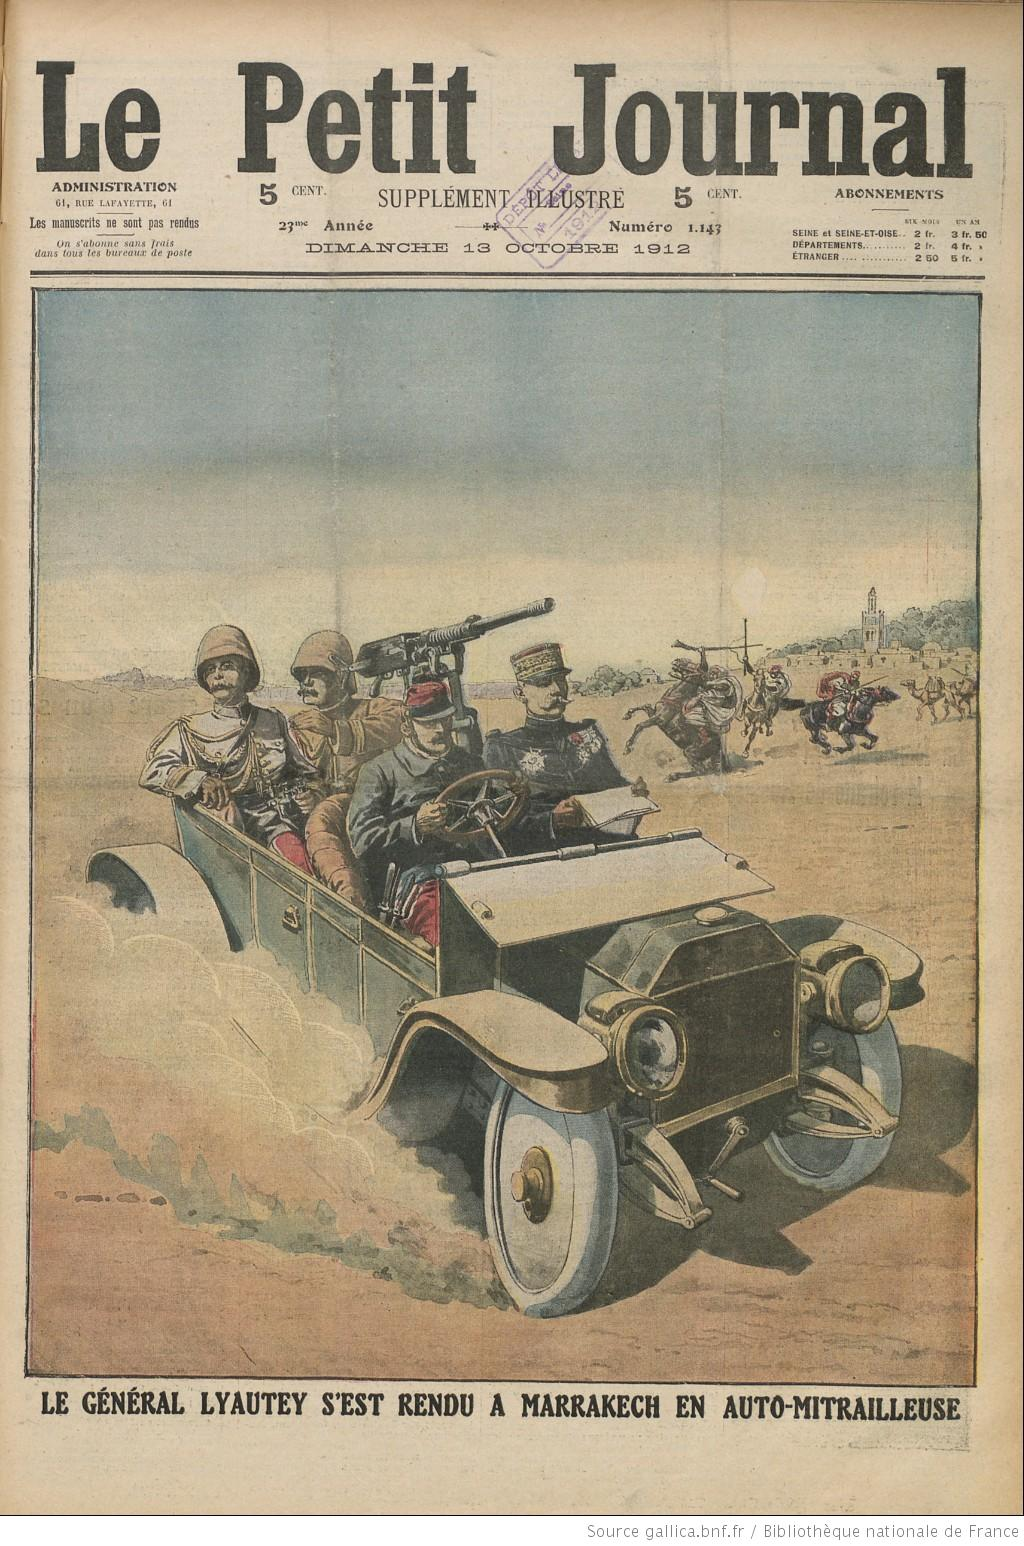 file lyautey reaches marrakesh in armored car  1912  le petit journal  jpg